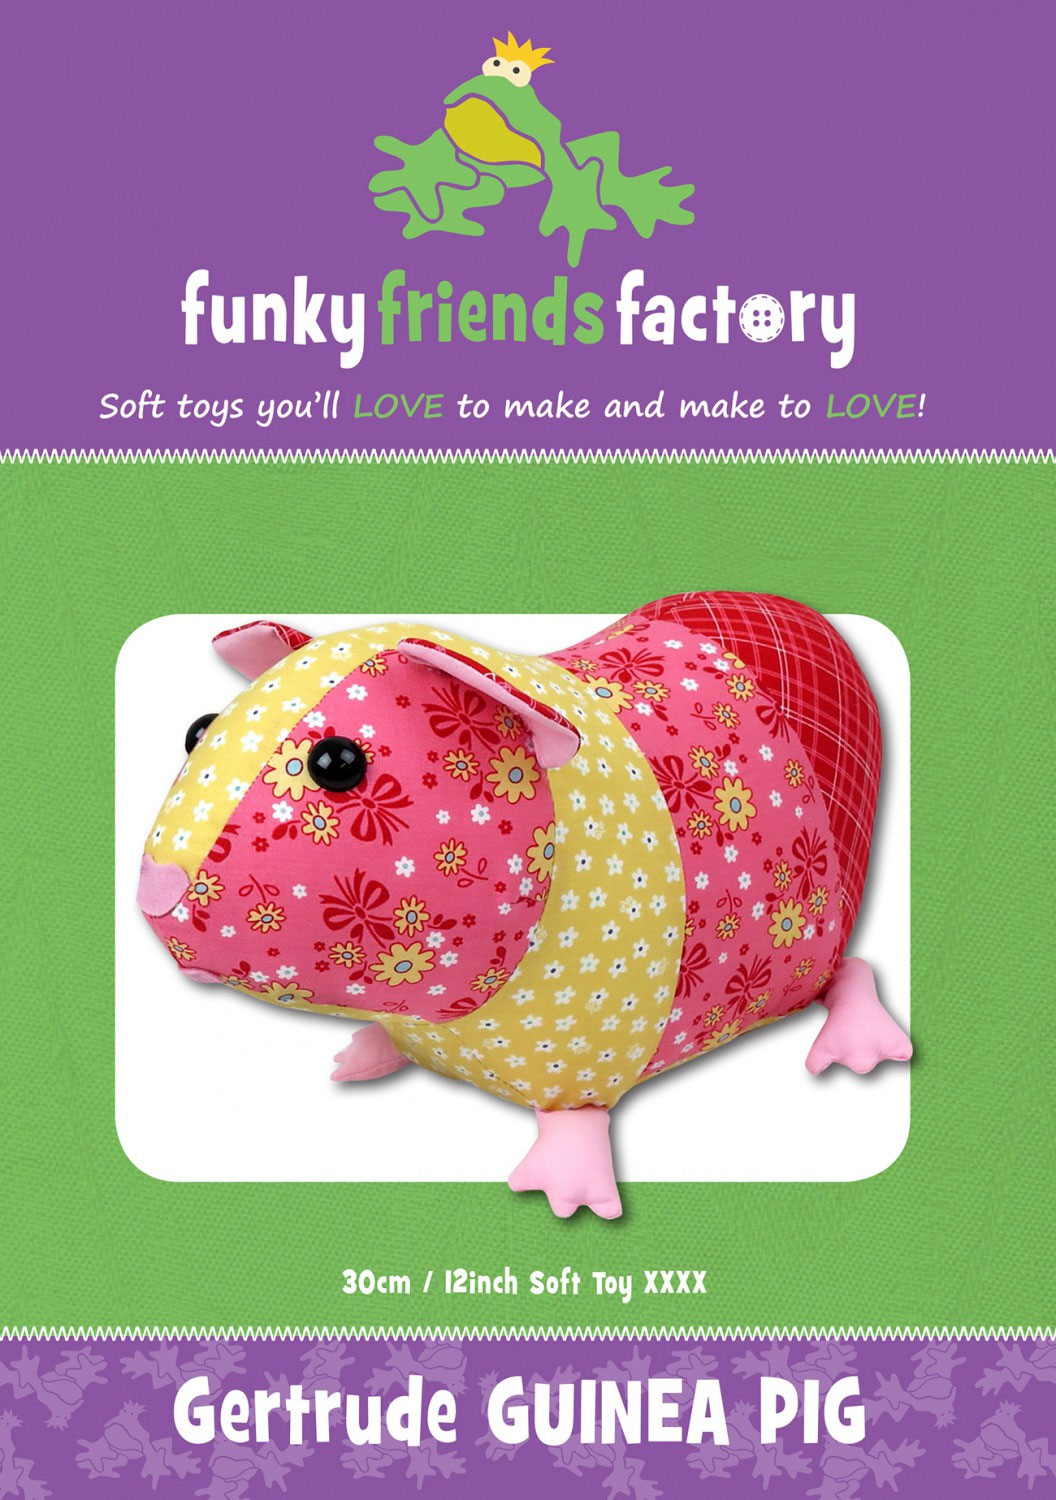 Gertrude-Guinea-Pig-sewing-pattern-Funky-Friends-Factory-front